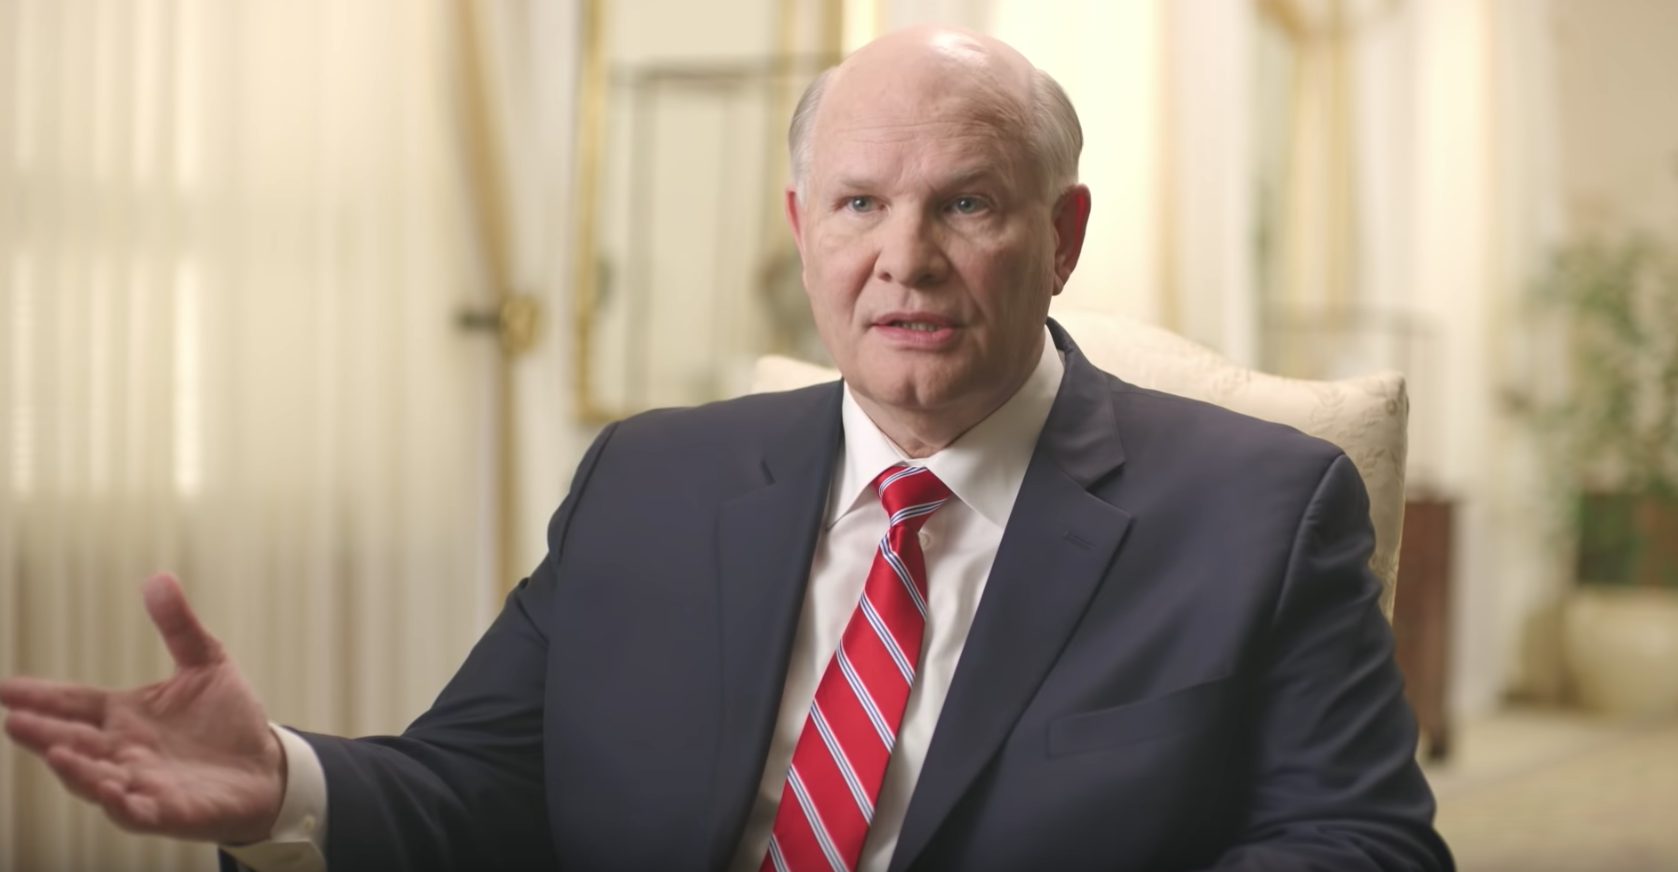 Elder Renlund talks about suicide prevention in a new series of videos produced by the Church.